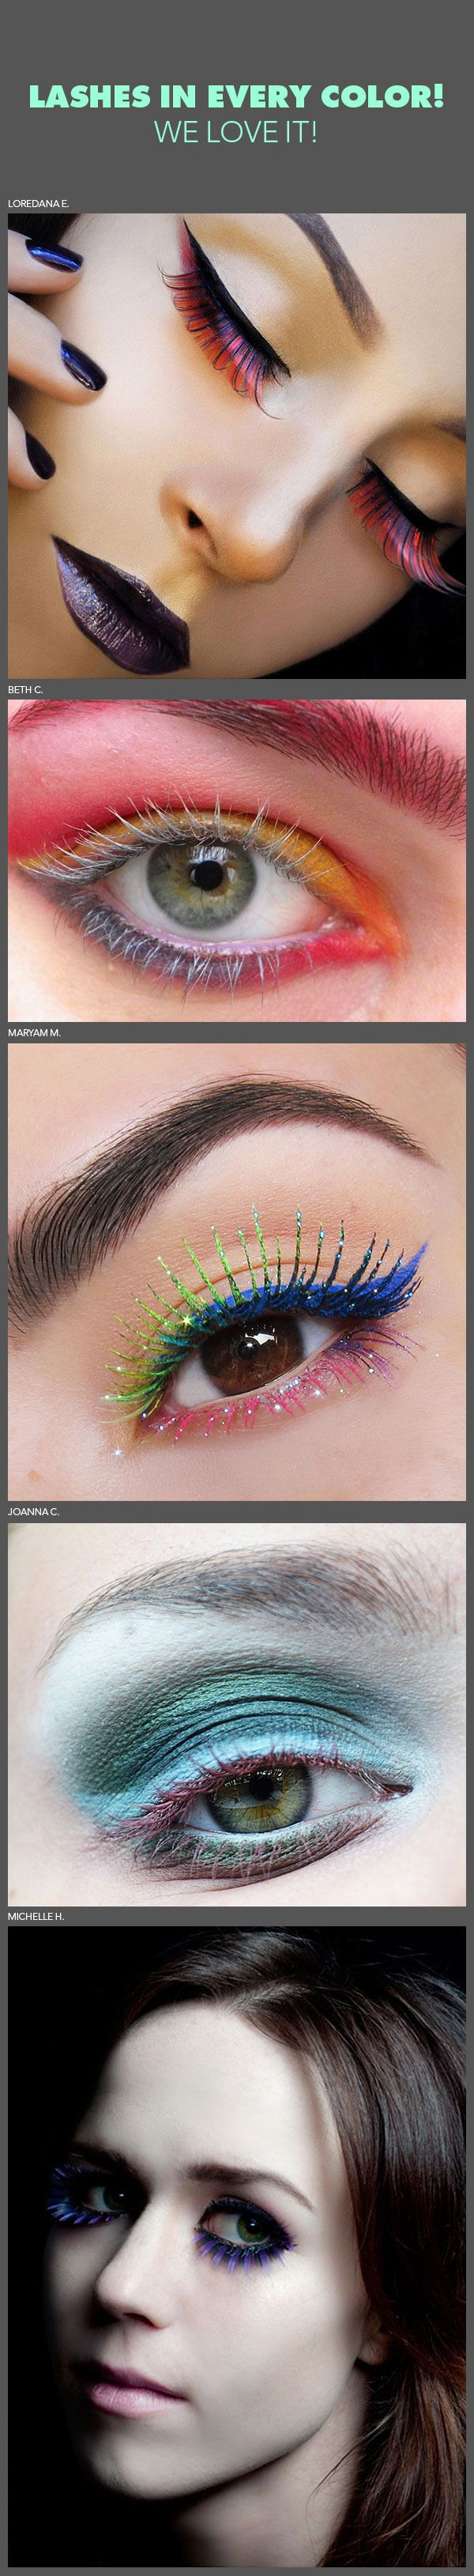 Lashes In Every Color! We Love It!